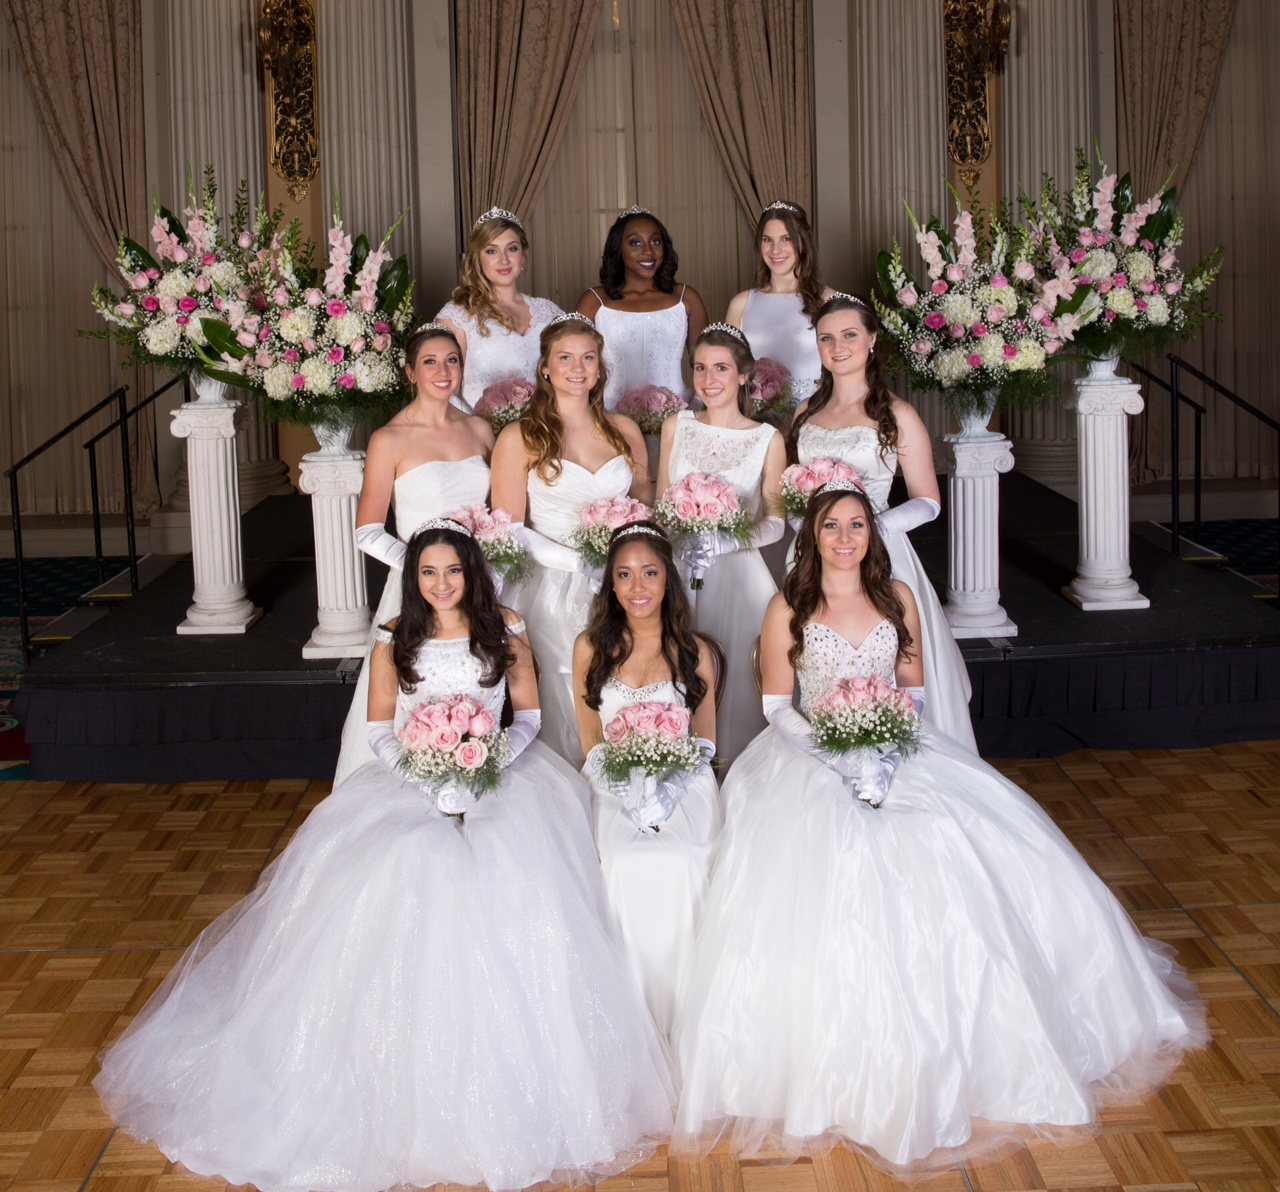 National Charity League's graduating Ticktockers are, front row from left,  Natalie Sardarov, Charlotte Duldulao and Alyssa Magoon; middle row from left, McKenna Sandoval, Kate Wilke, Gabby Crispi and Zoe Kelman; and back row from left, Aimee Snow, Lelosa Aimufua and Kelly Kaufman. (Courtesy Gilmore Studios)